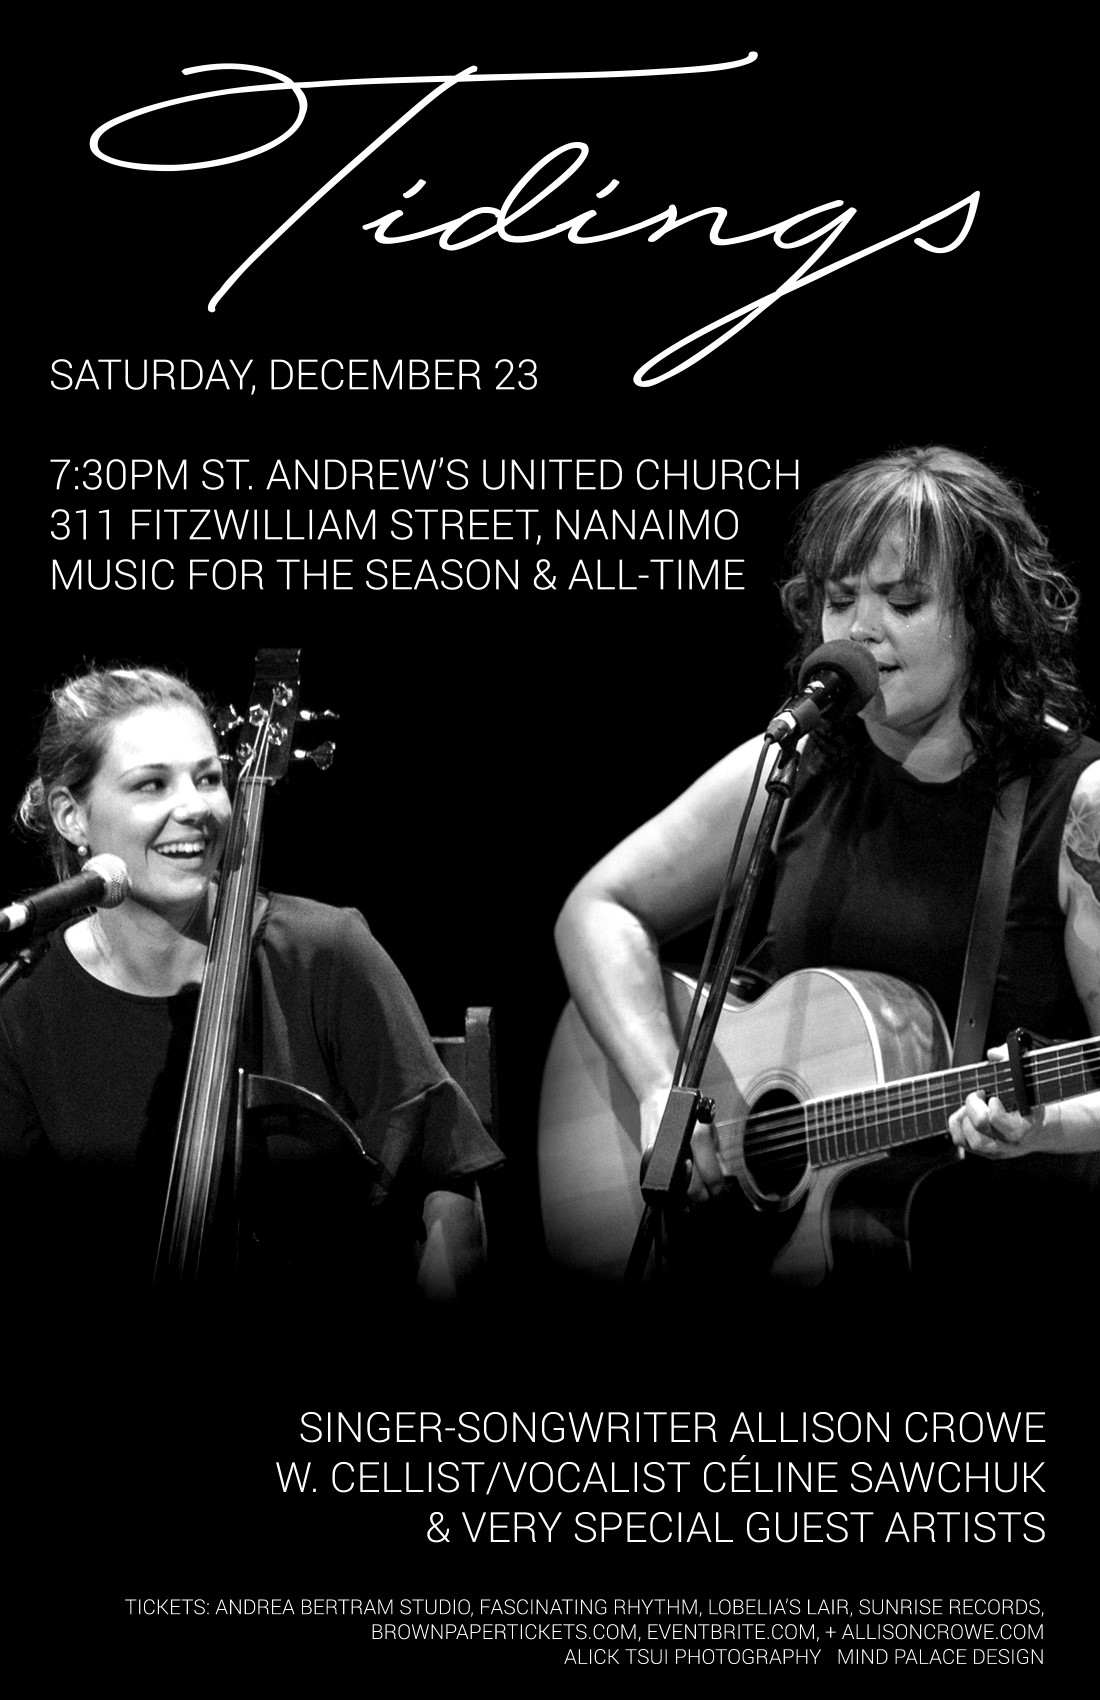 Nanaimo Tdings - Allison Crowe, Celine Sawchuk & Special Guests - St. Andrew's United Church, Saturday, December 23, 2017